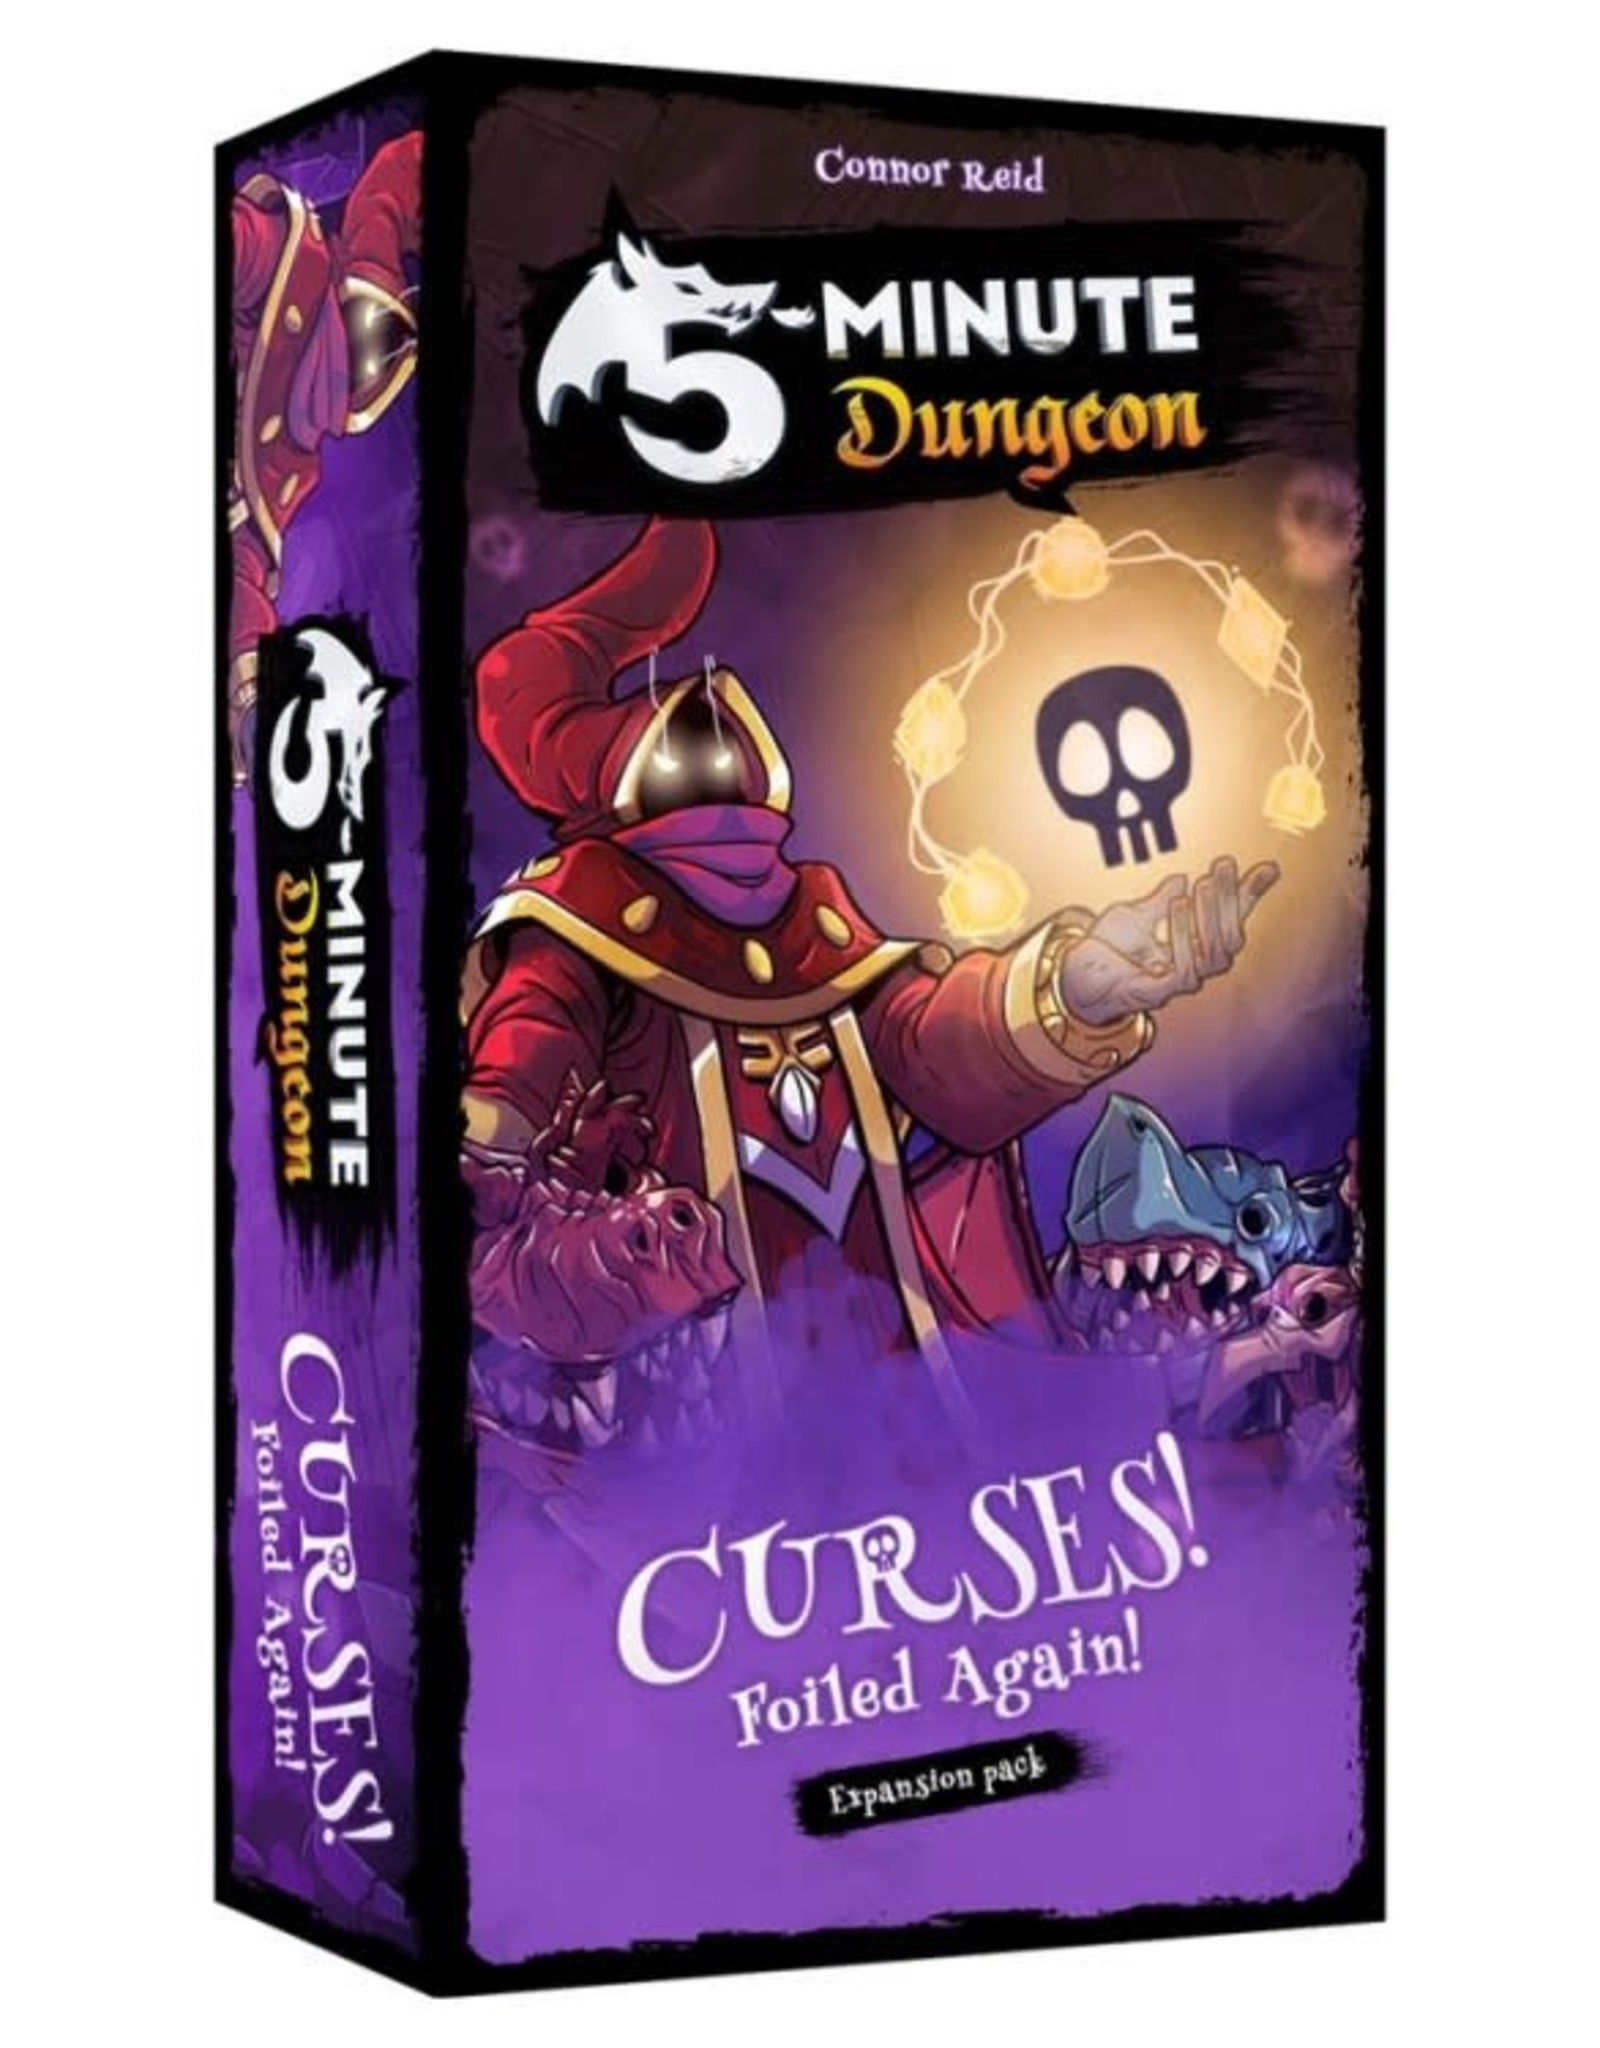 Wiggles #D 5-Minute Dungeon: Curses! Foiled Again